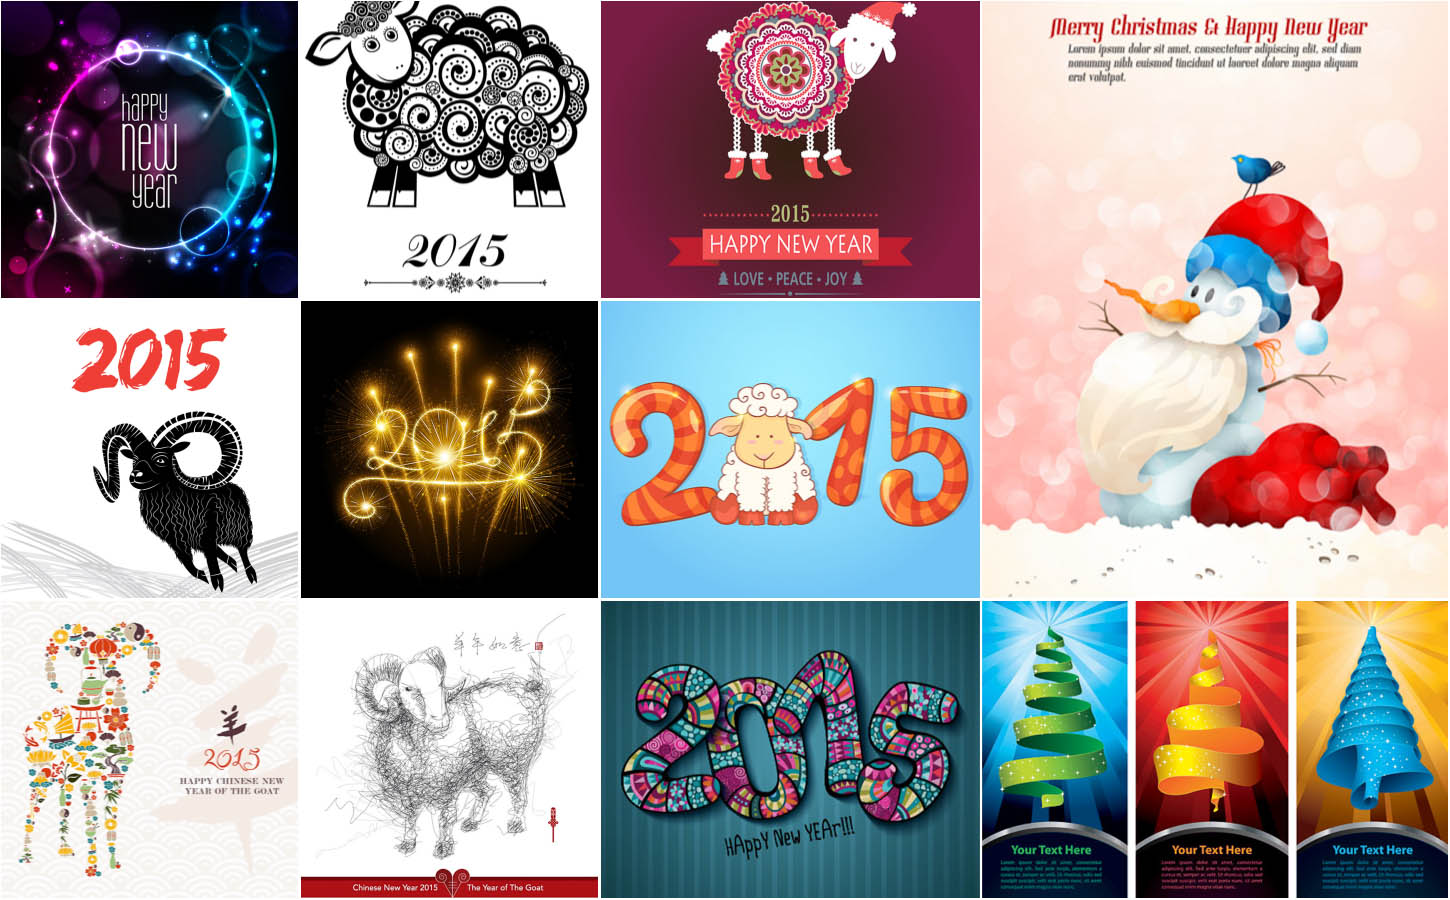 New Year 2015 goats, 2015 inscription